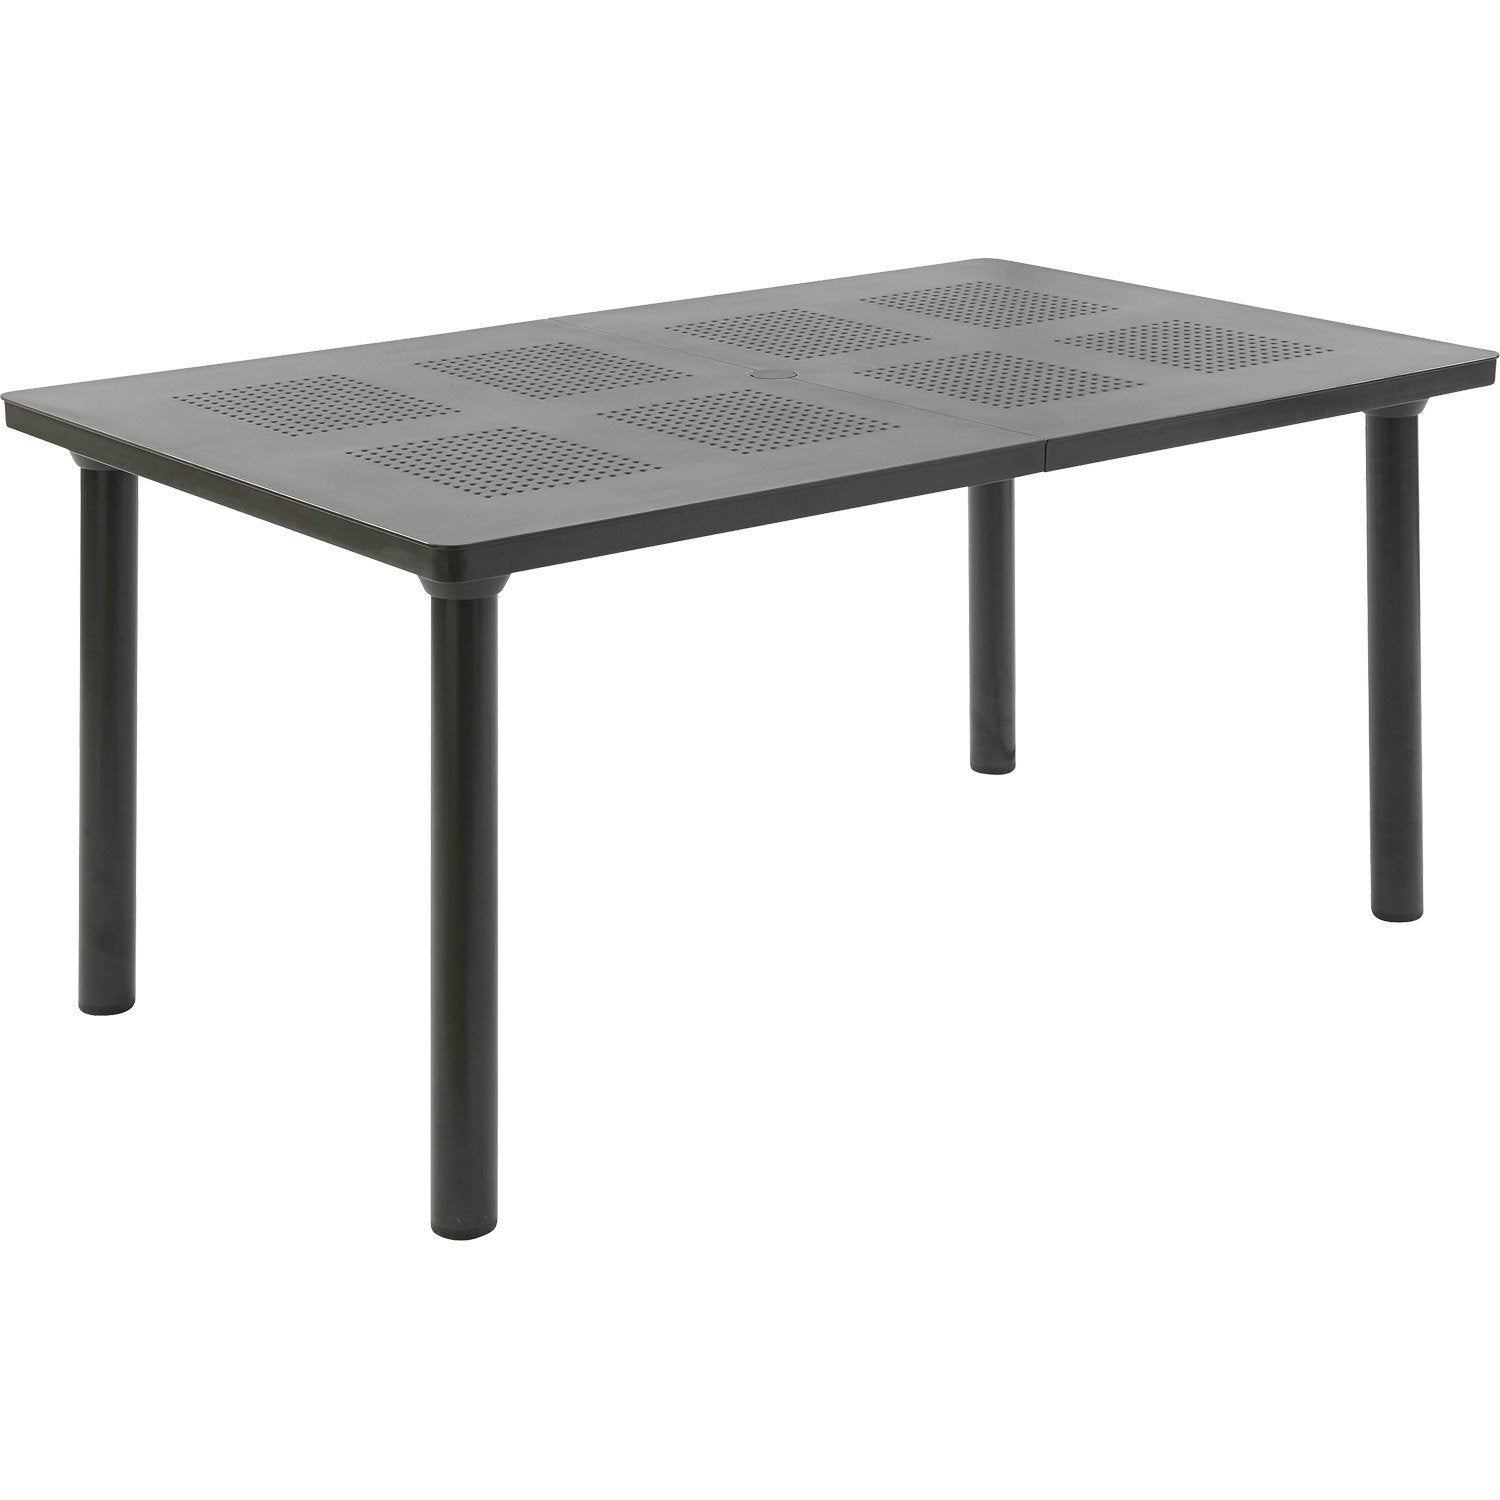 Table de jardin plastique but - Table de jardin tressee ...